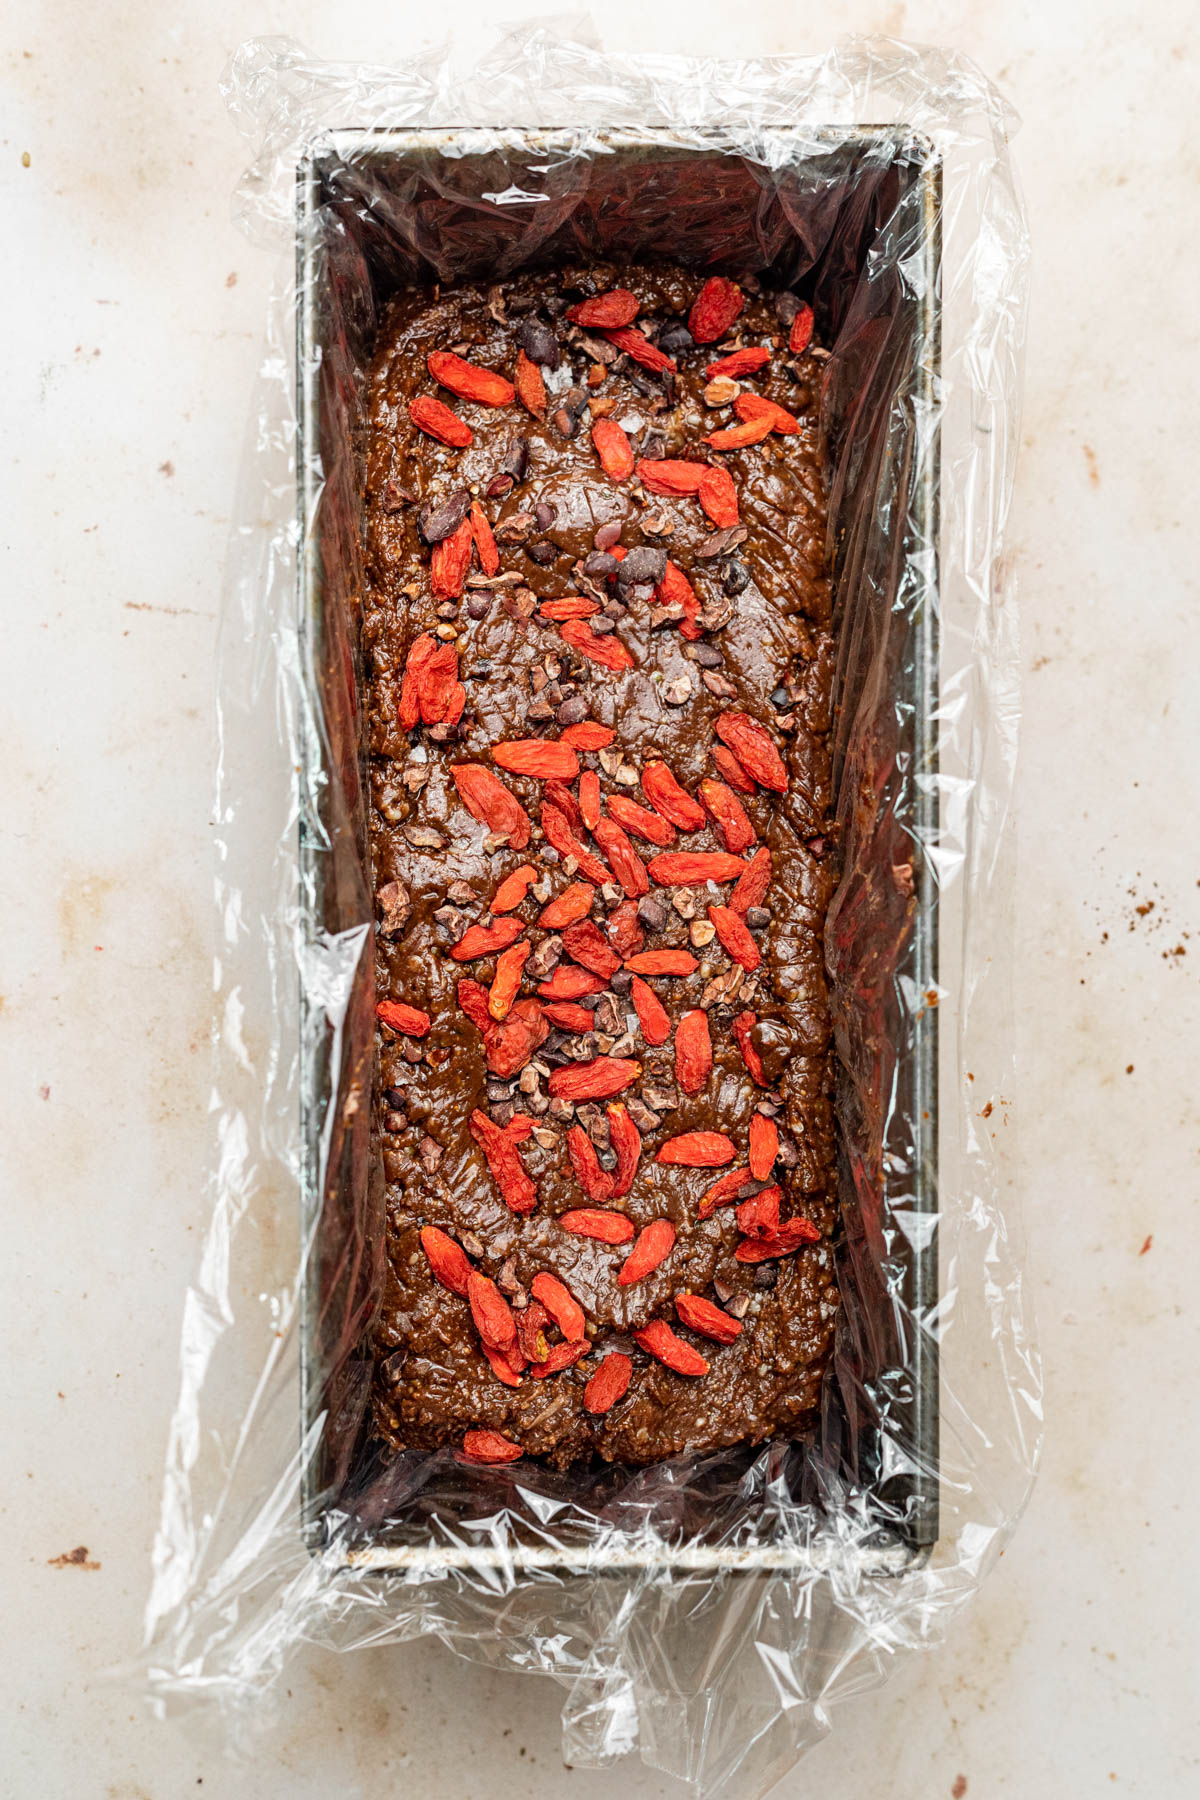 Goji berries pressed into the top of the fudge.